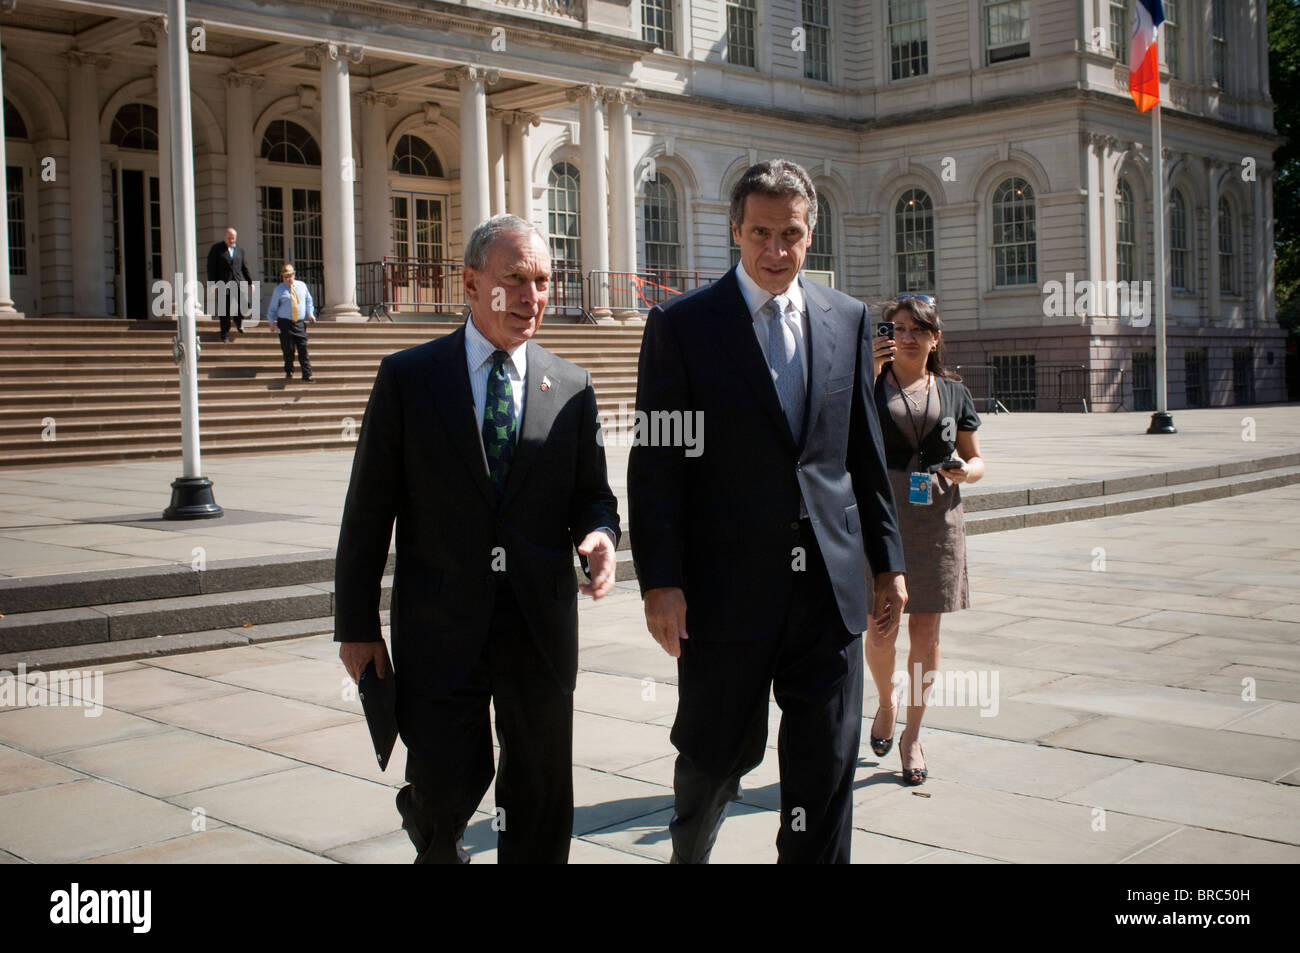 NY Mayor Michael Bloomberg, left, endorses NYS Attorney General Andrew Cuomo, right, for New York Governor - Stock Image